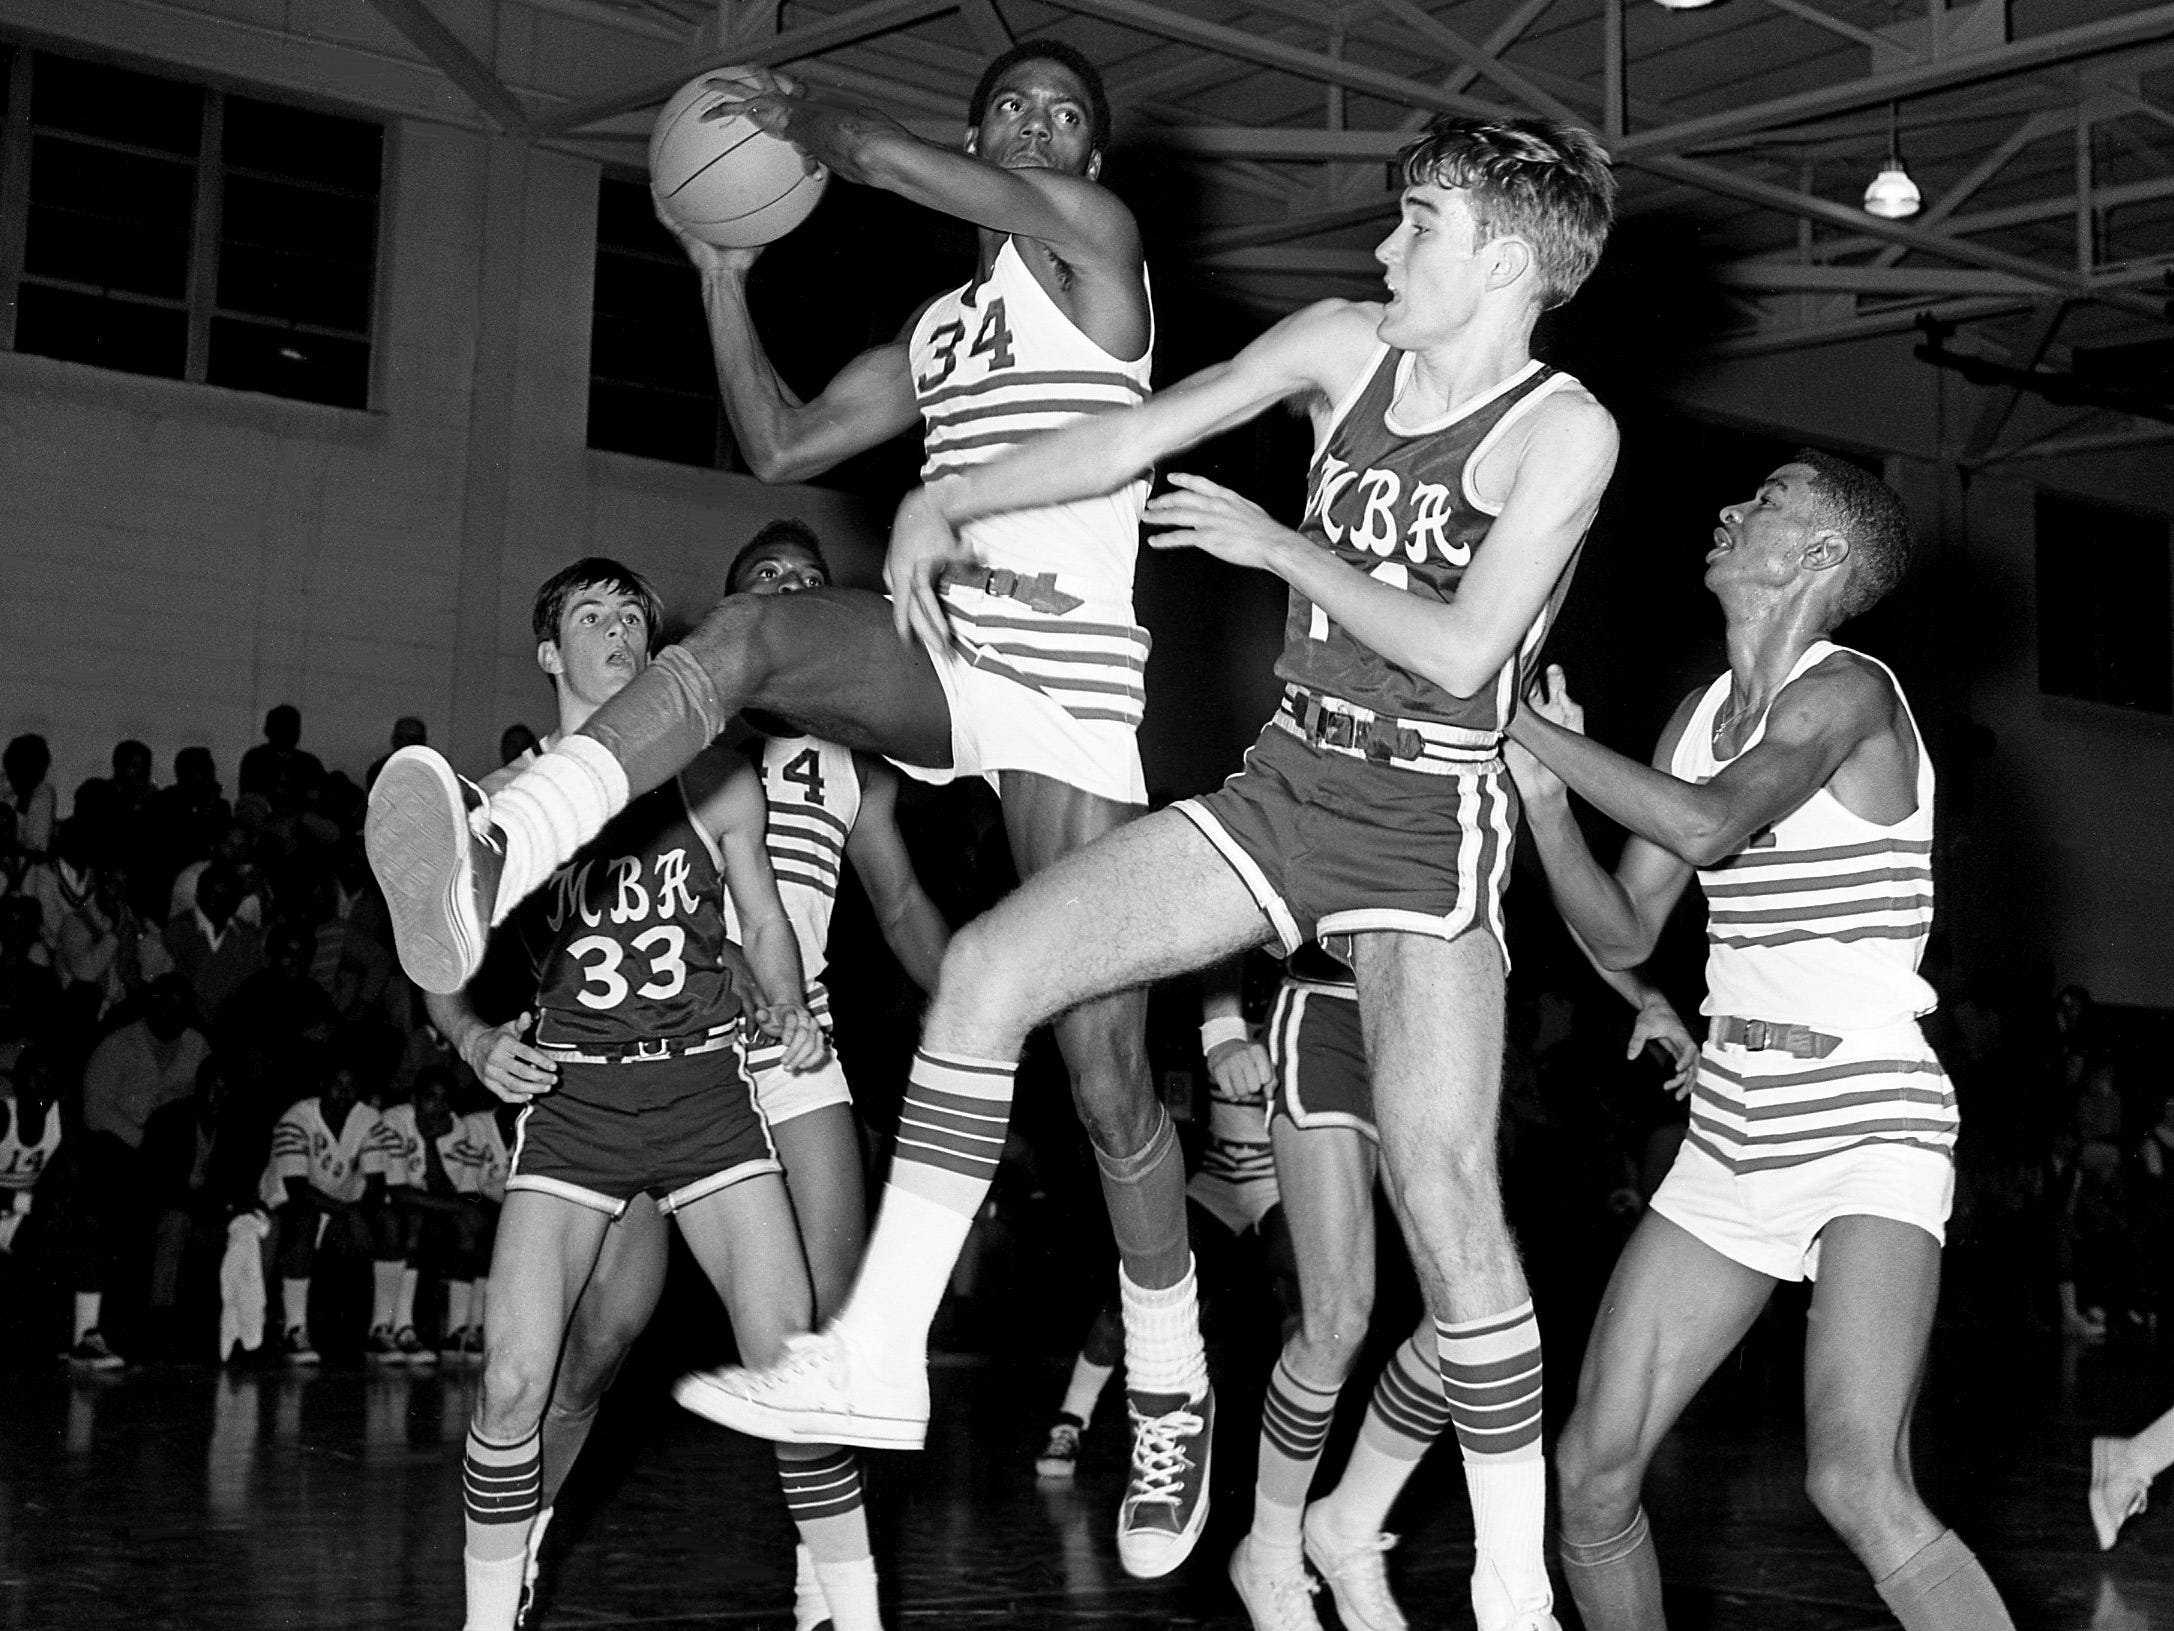 Pearl High's Gary Brooks (34) beats MBA's Edwin Milam, center right, for the rebound as unbeaten Pearl won its ninth straight game in a 58-42 win at home over Big Red on Jan. 3, 1969.